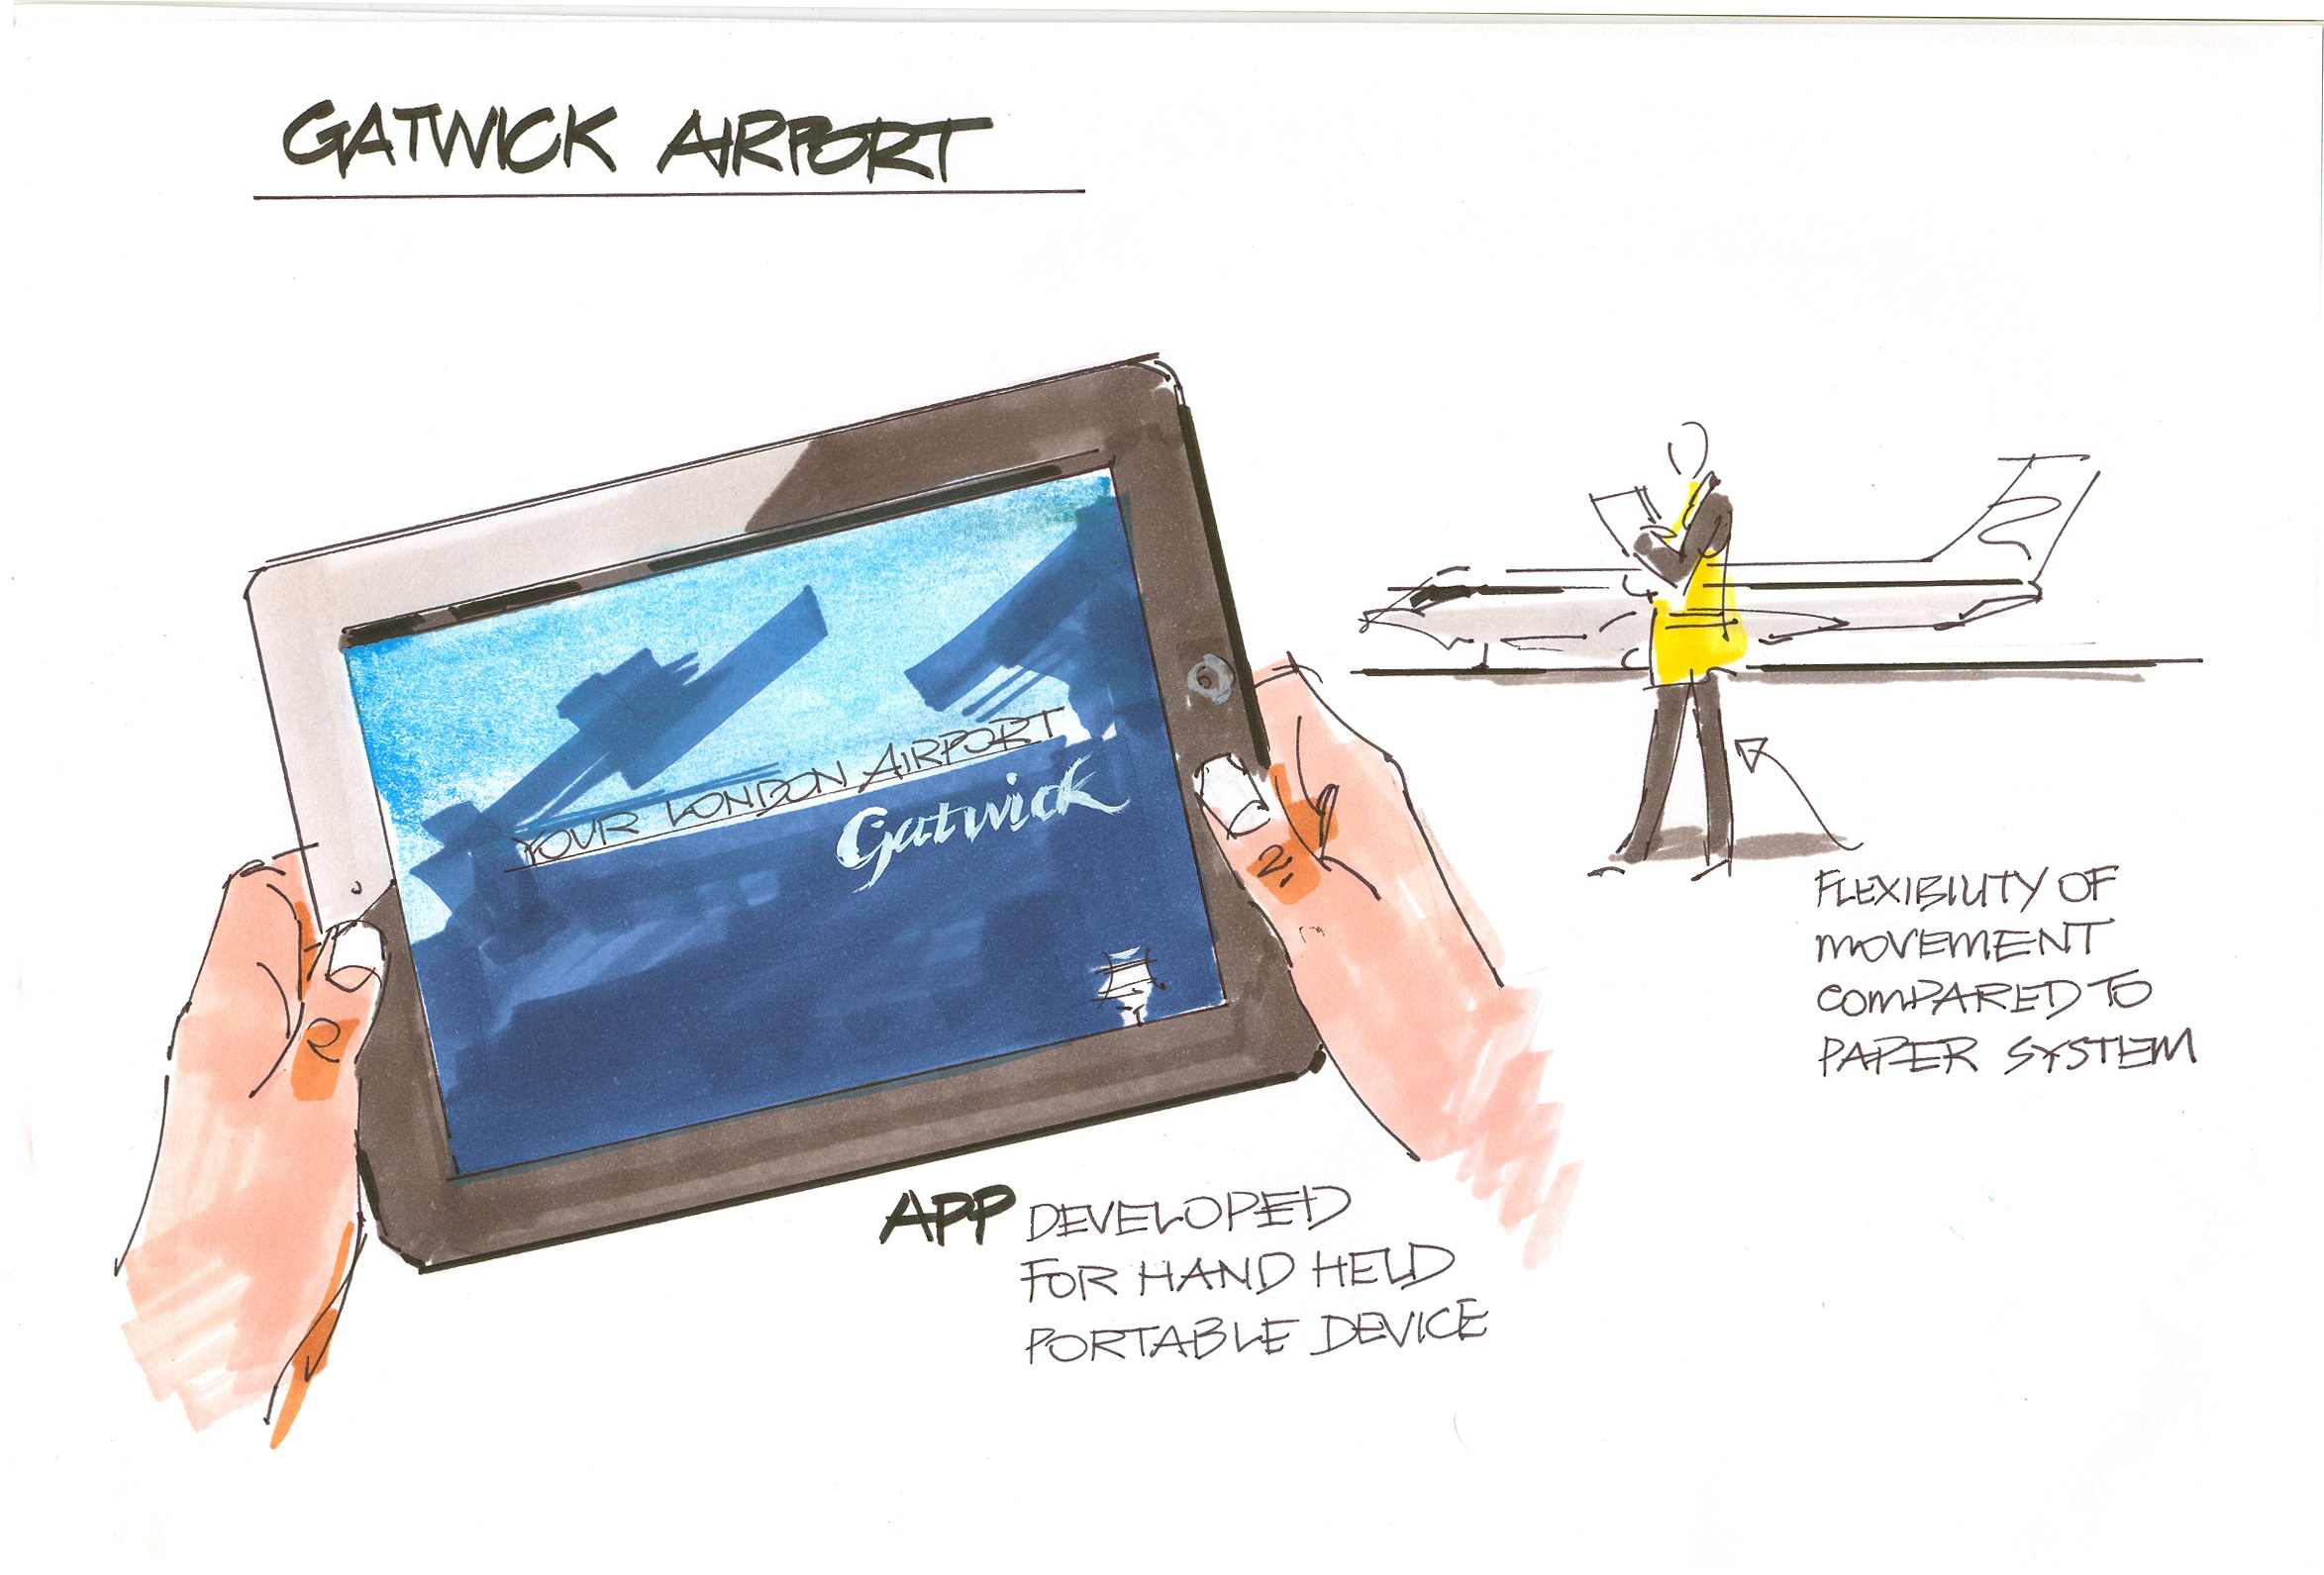 Gatwick-ipad visual